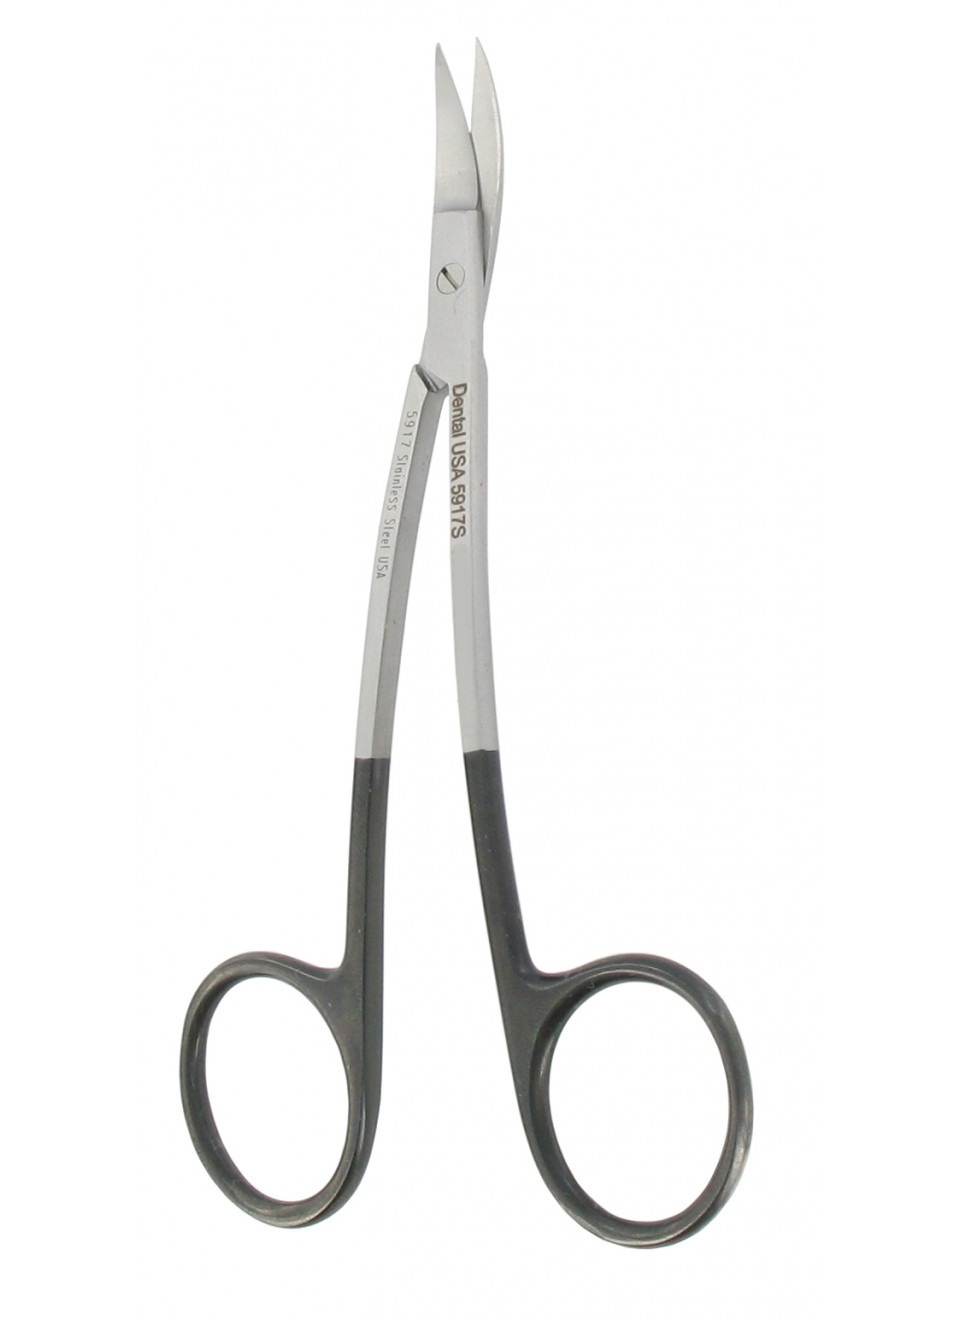 Gum Scissors La grange 11.5 cm, Dental USA